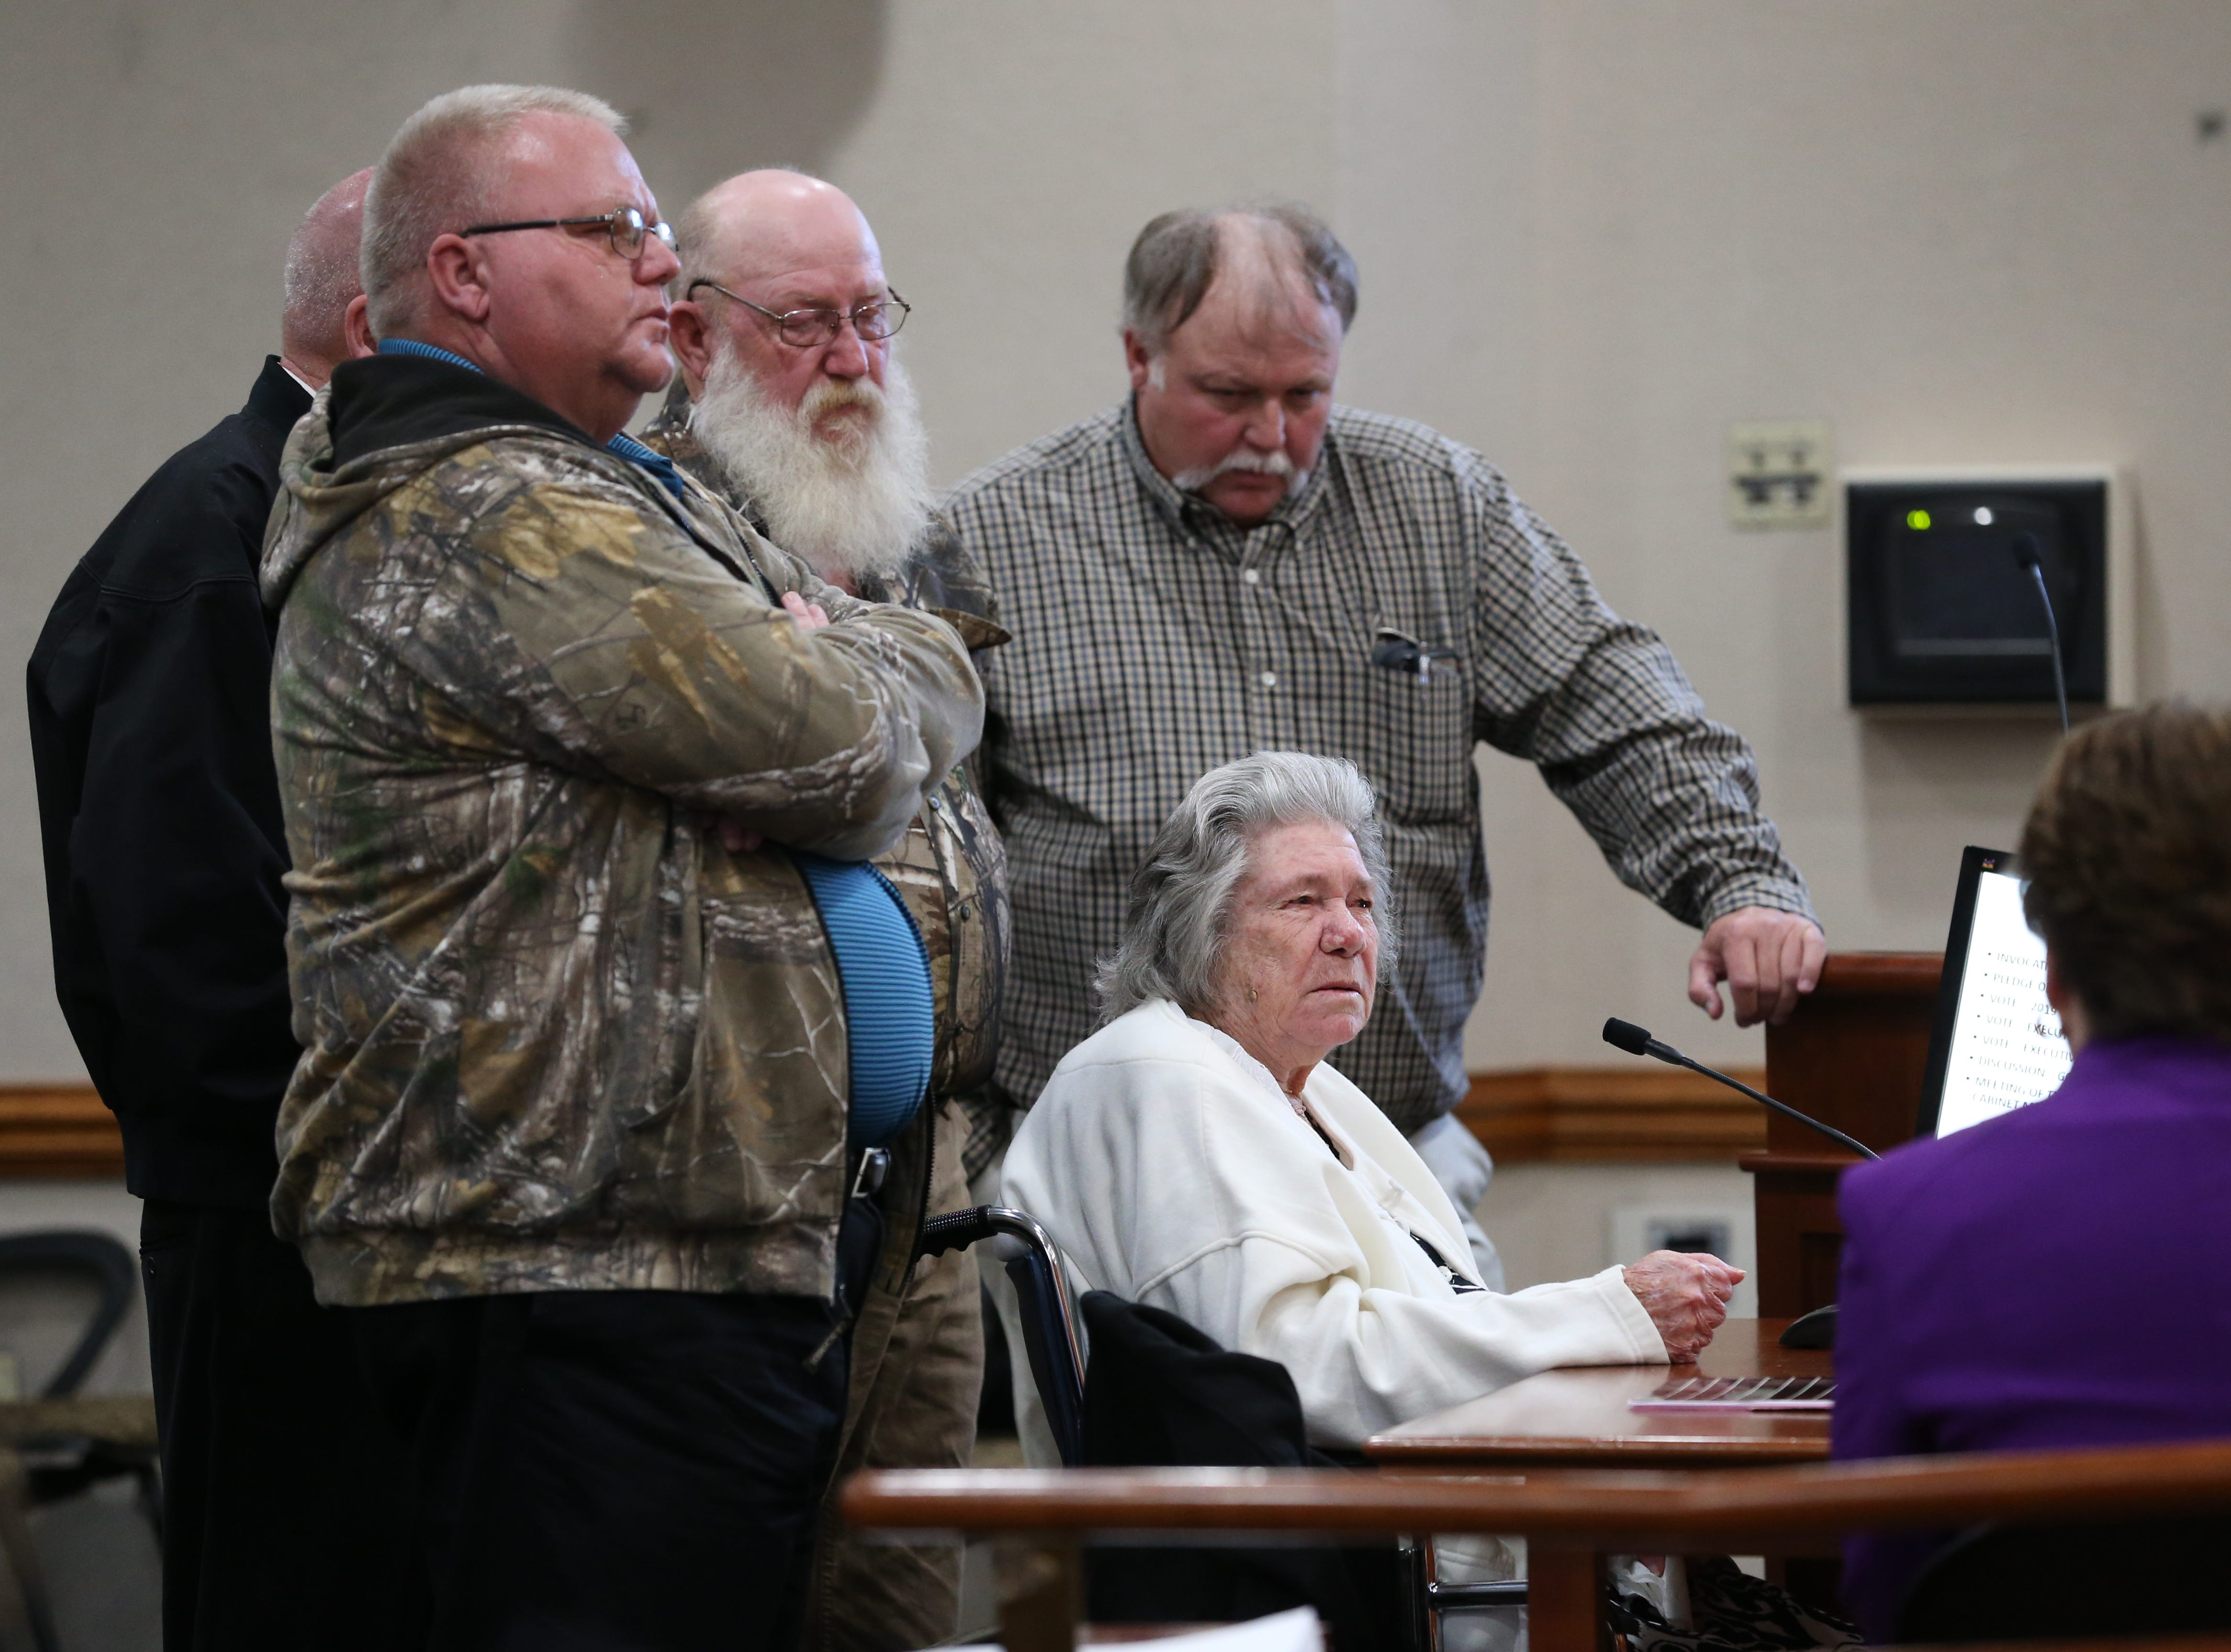 Surrounded by her sons, Norma Padgett, the accuser of the Groveland Four, hits her fist on the table and pleads with the clemency board not to pardon the Groveland Four during a clemency board hearing where the four were pardoned Friday, Jan. 11, 2019.